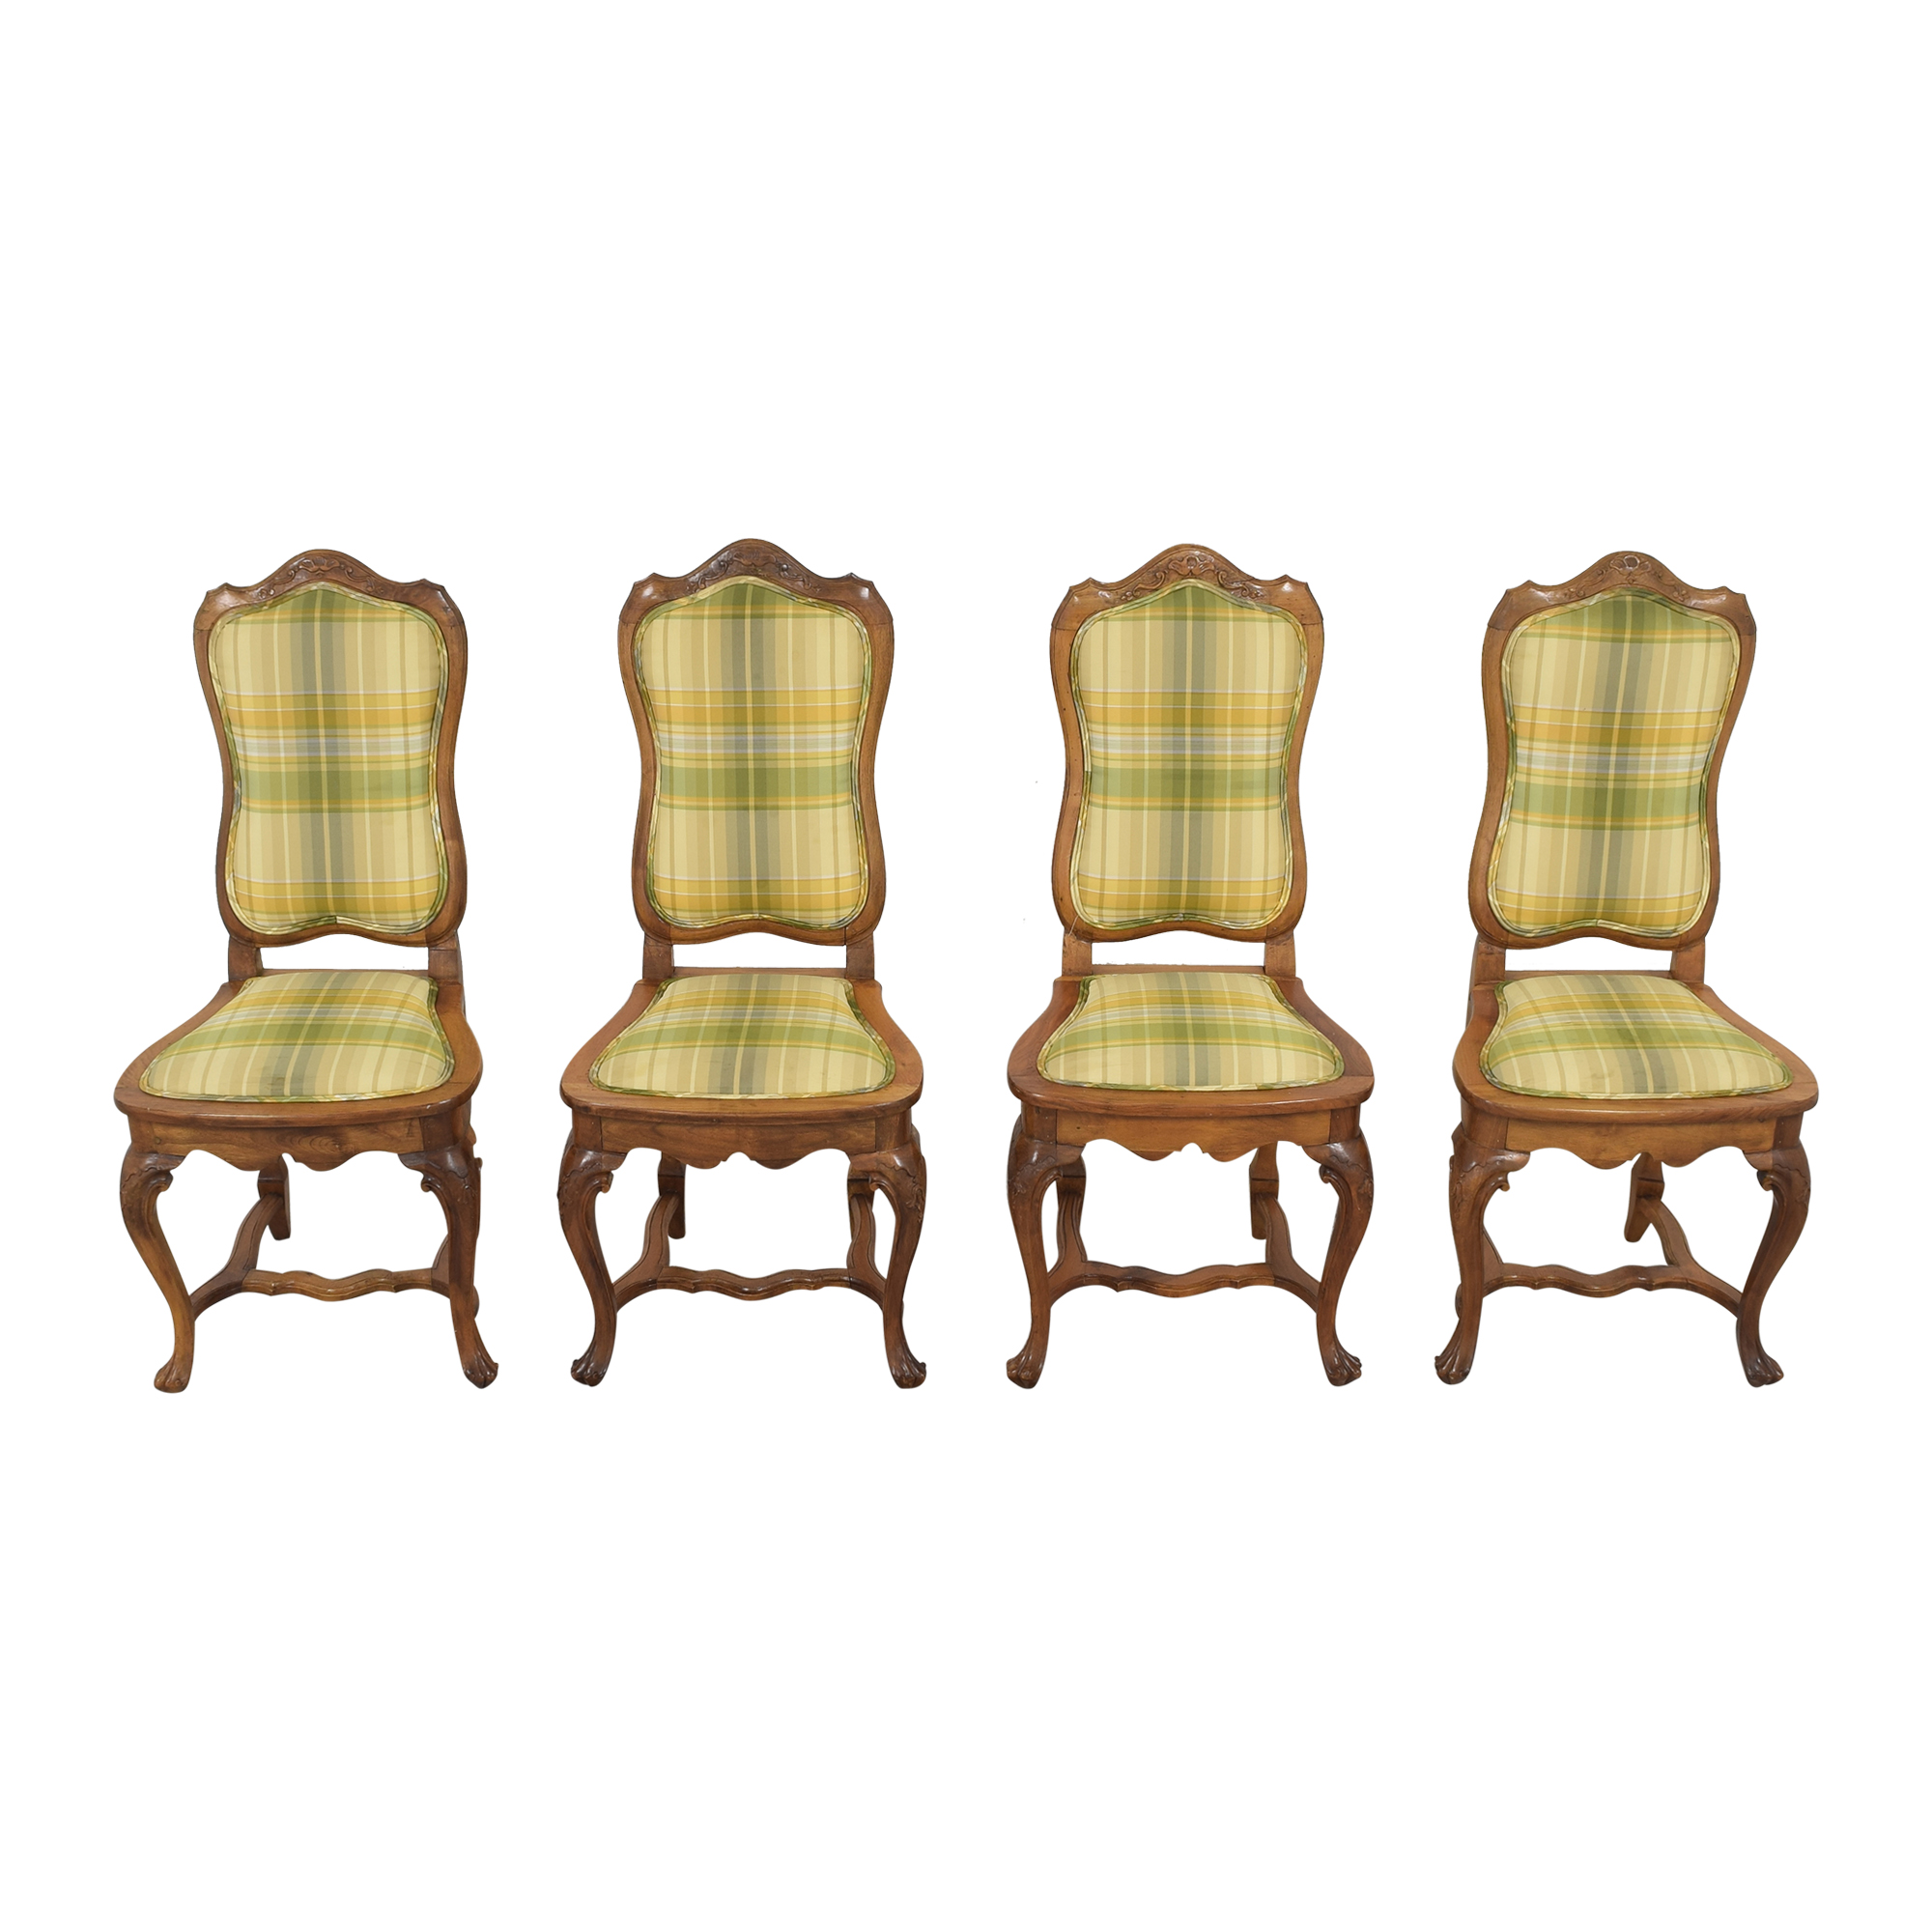 buy  Italian Upholstered Dining Chairs online